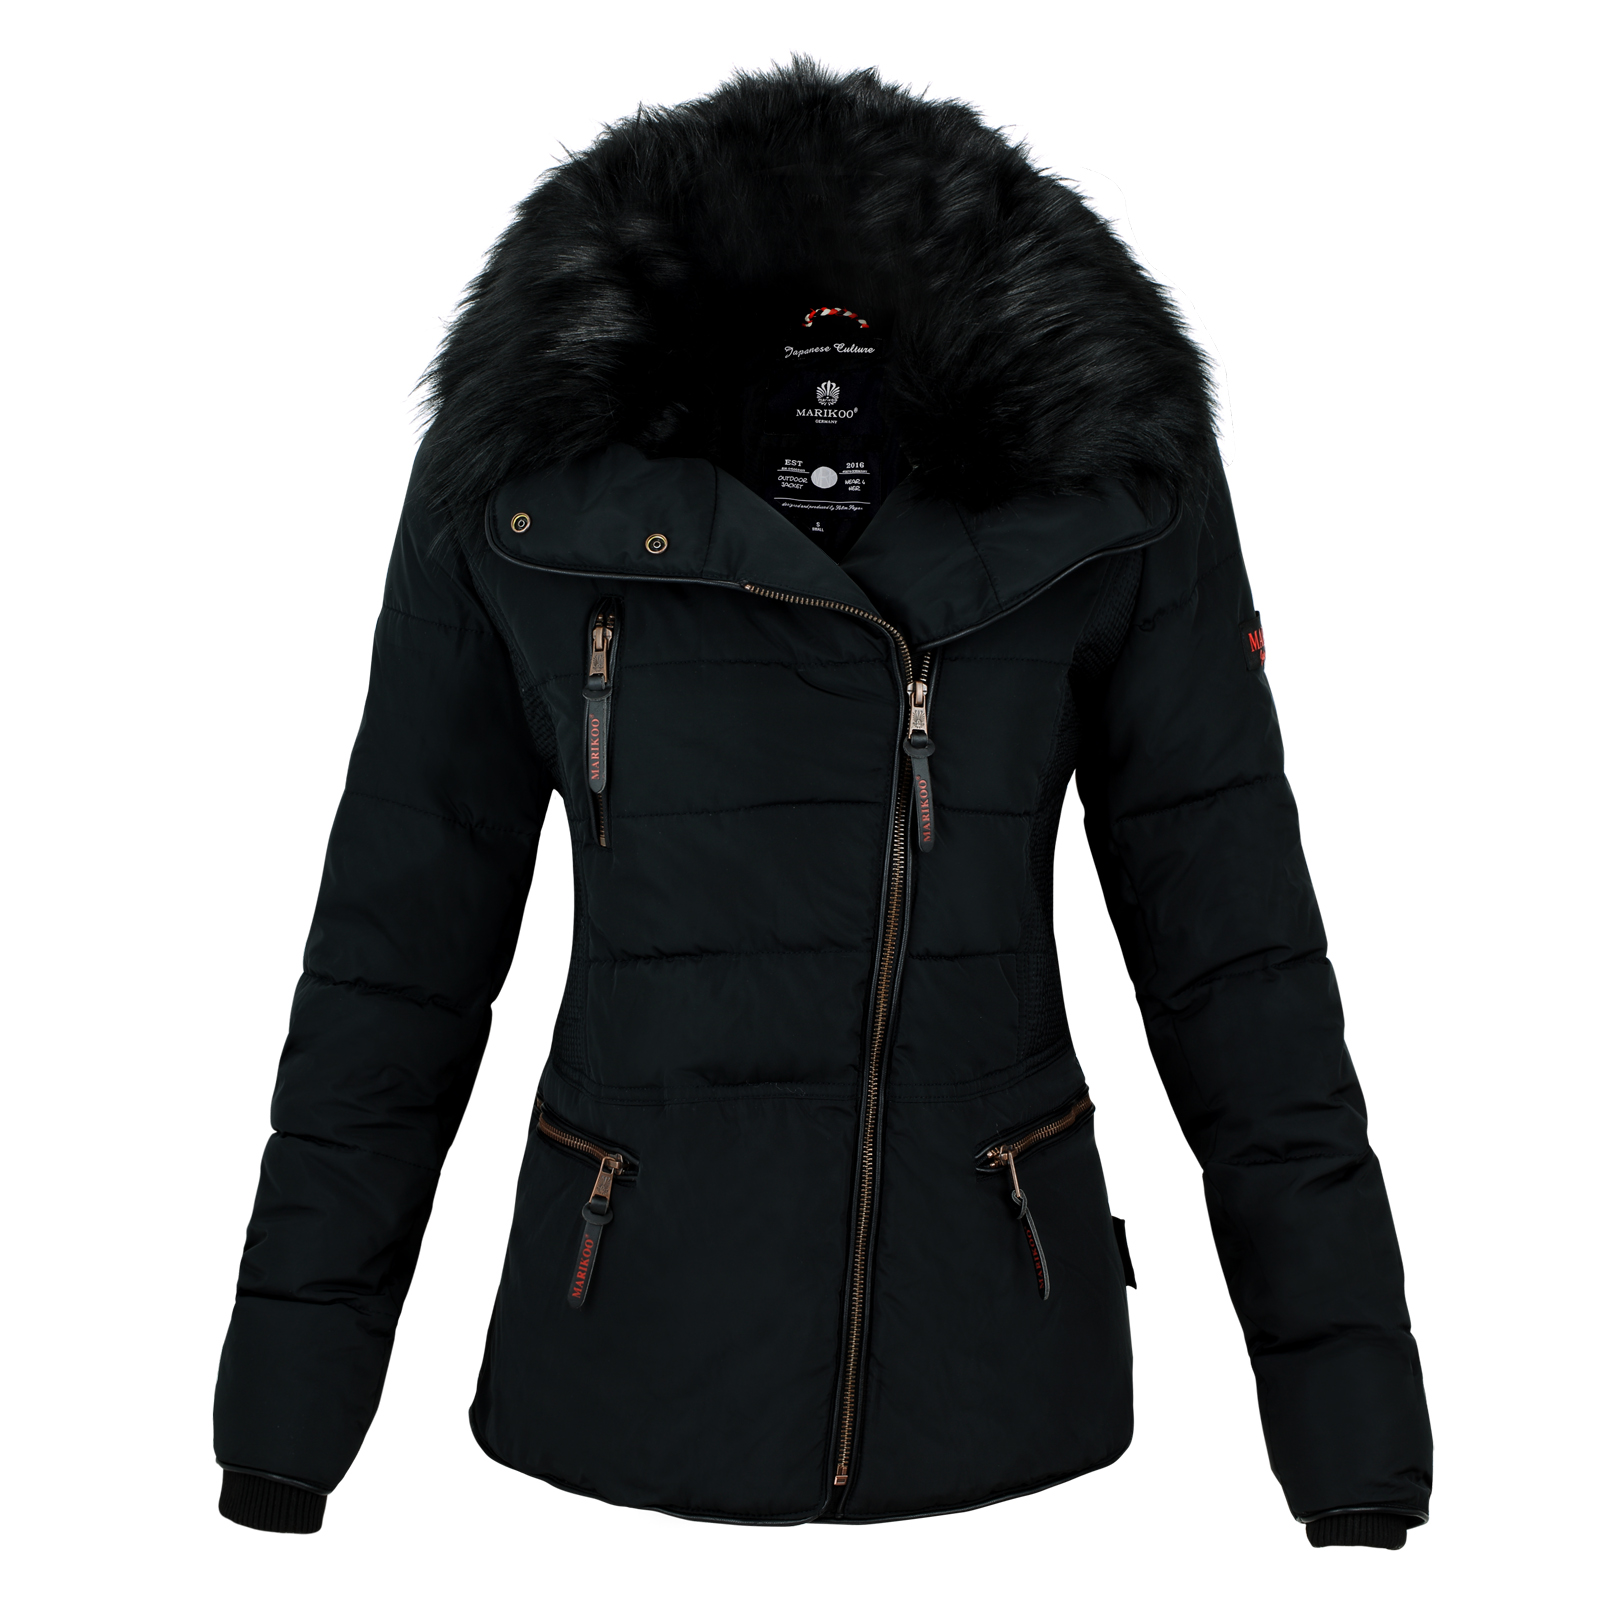 marikoo marta damen herbst winter kurz stepp jacke parka. Black Bedroom Furniture Sets. Home Design Ideas